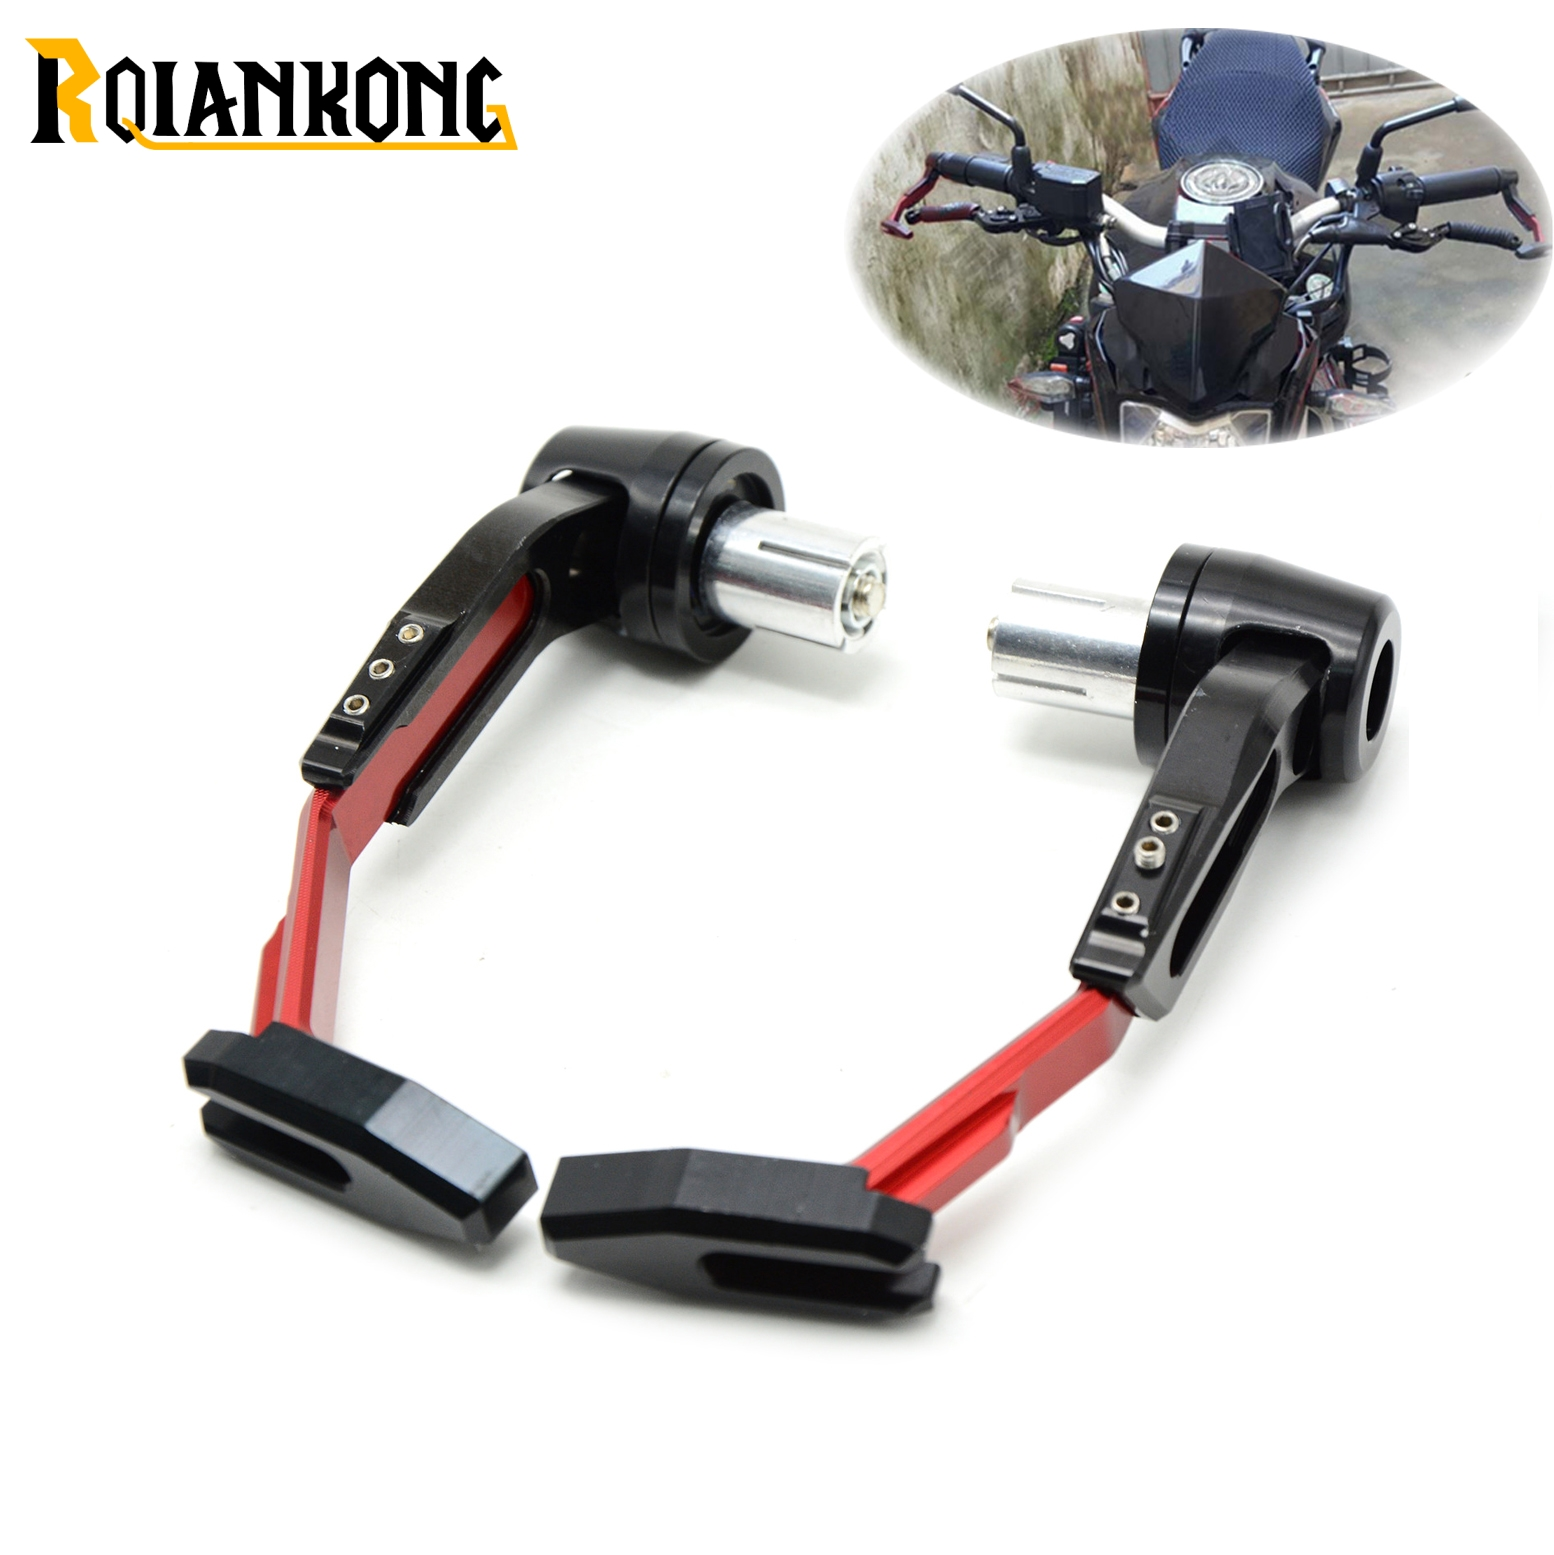 Universal 7/822mm Motorcycle Handlebar Clutch Brake Lever Protect Guard for Ducati MONSTER 400 620 695 696 796 821 1100 1200